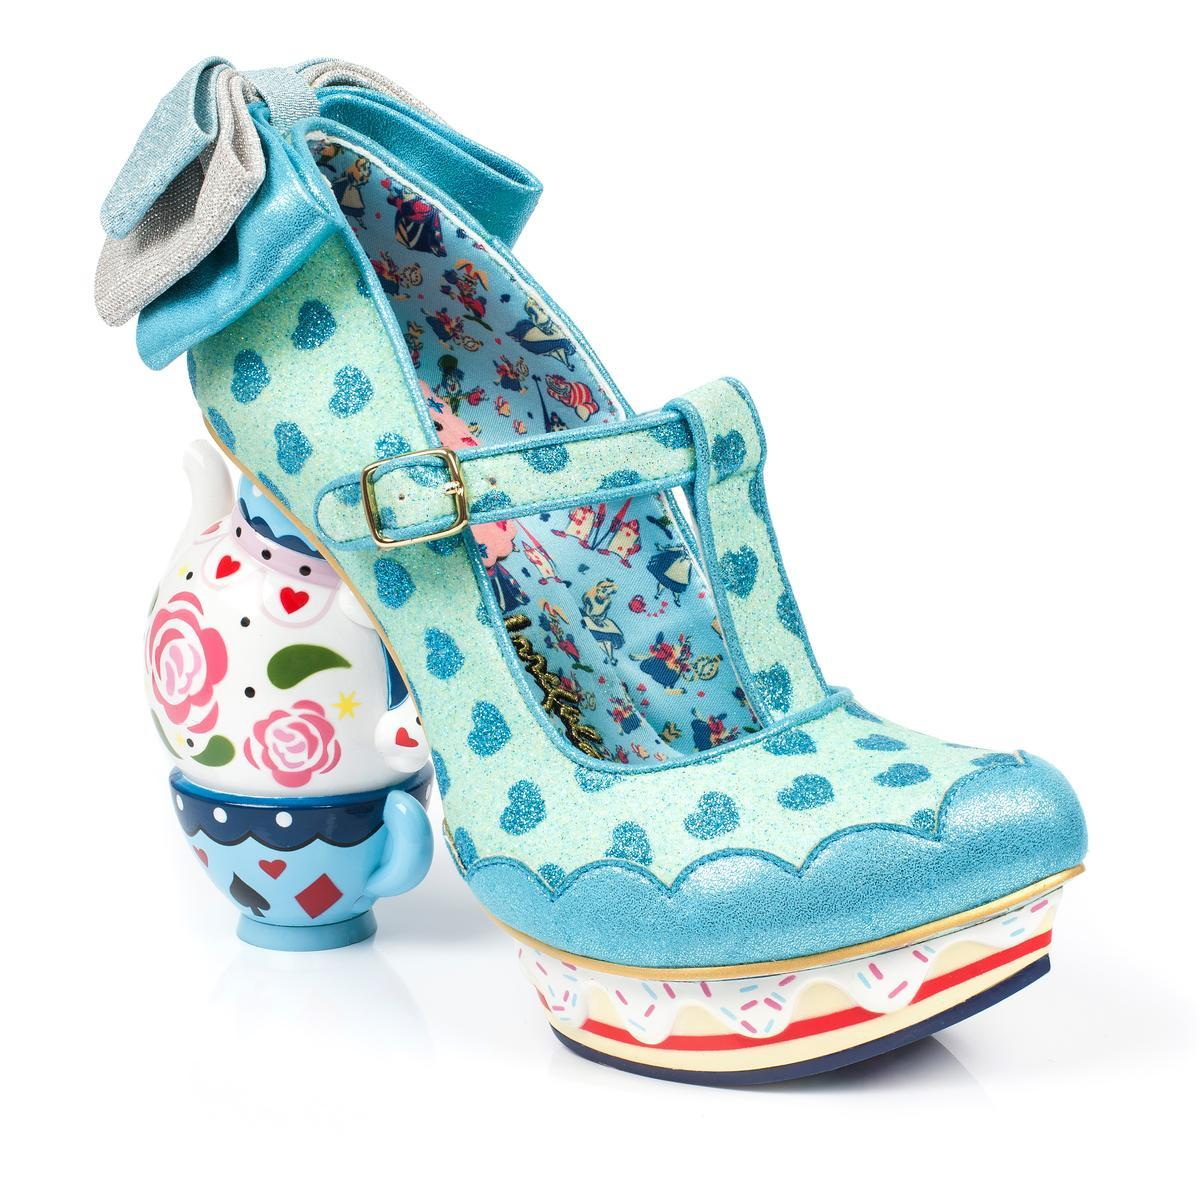 Irregular Choice Alice in Wonderland Collection: My Cup of Tea Blue Heels